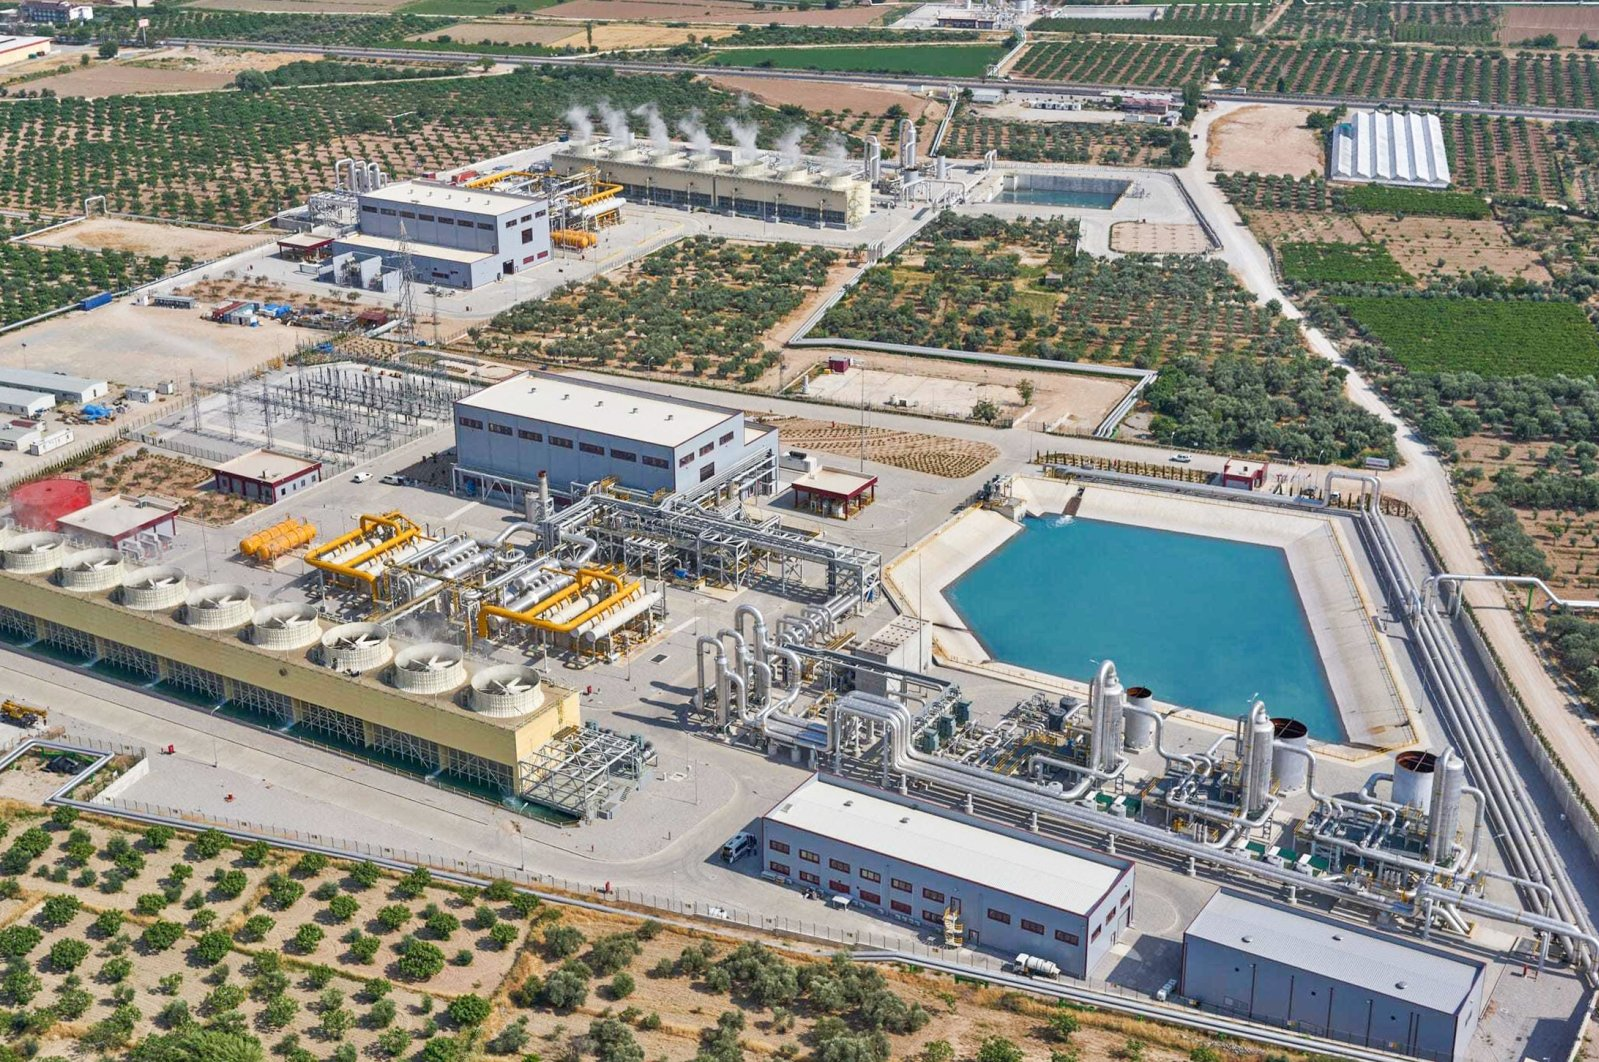 A geothermal power plant is seen in the central Aegean province of Denizli. (Courtesy of Zorlu Energy)